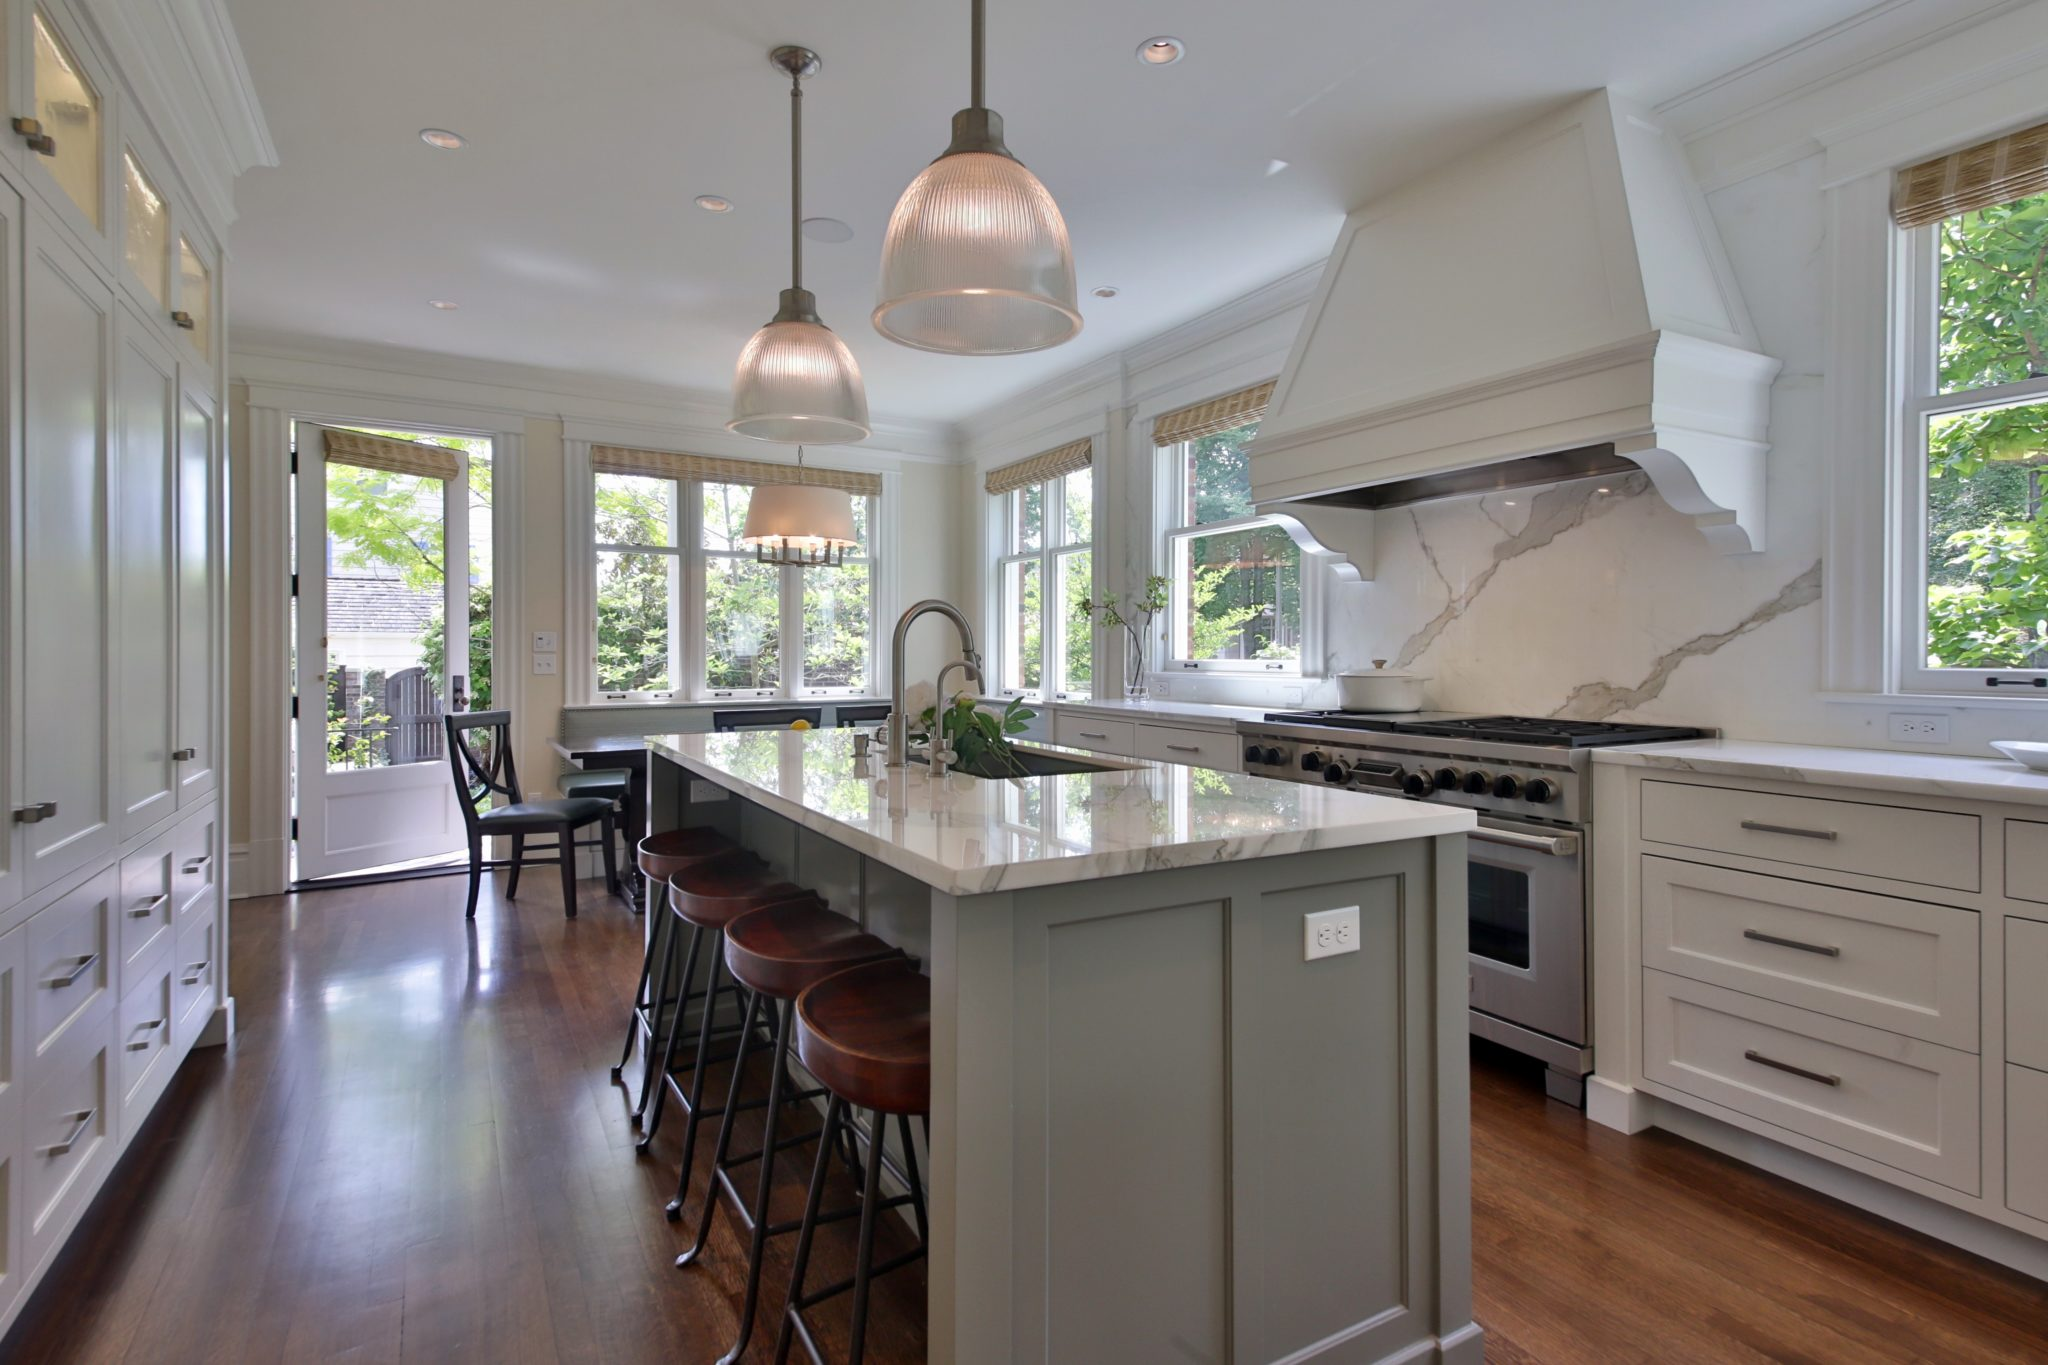 Seattle kitchen with grey island, white cabinets and hood, and marble backsplash by LeeAnn Baker Interiors Ltd.